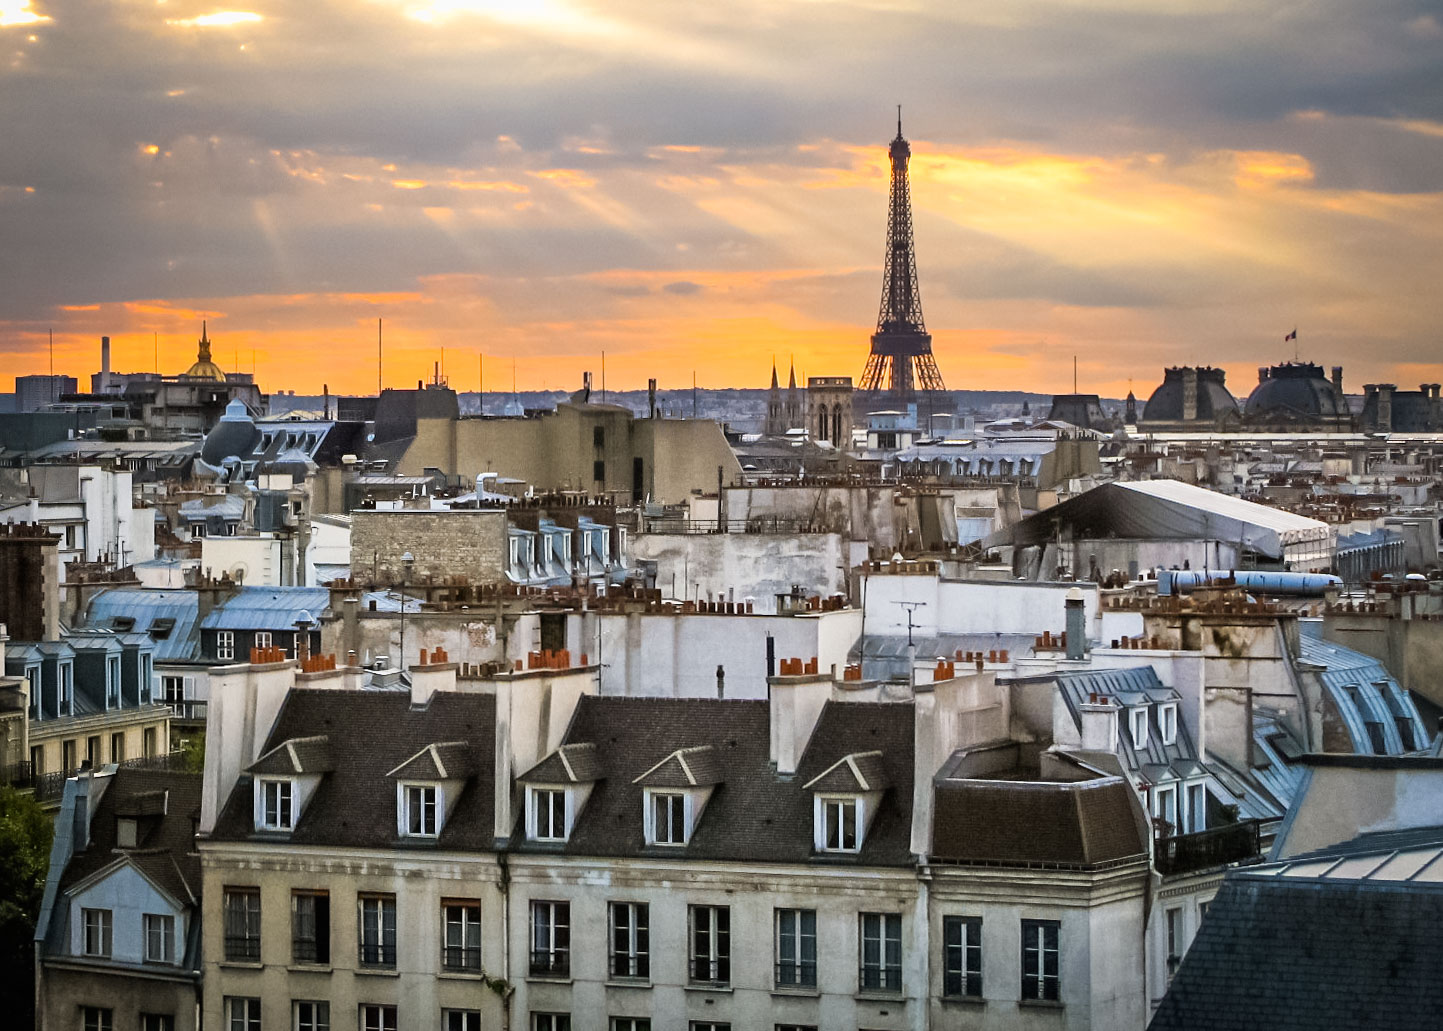 France - Paris sunset with Eiffel Tower from Pompidou.jpg